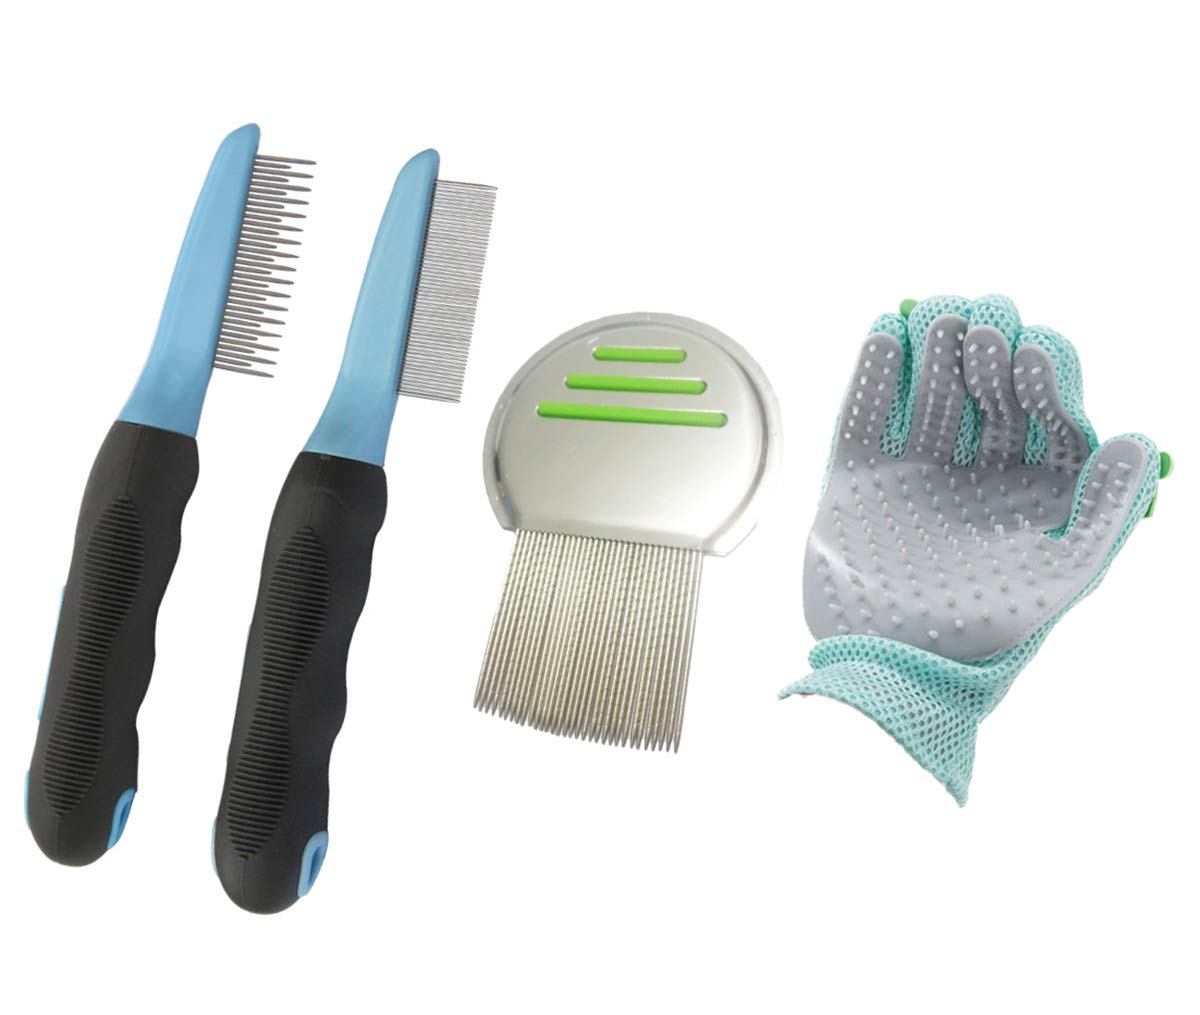 Amadam Pets Grooming Set of 4 for Dogs, Cats, Rabbits, Flea Lice Tick Comb, Shedding Comb, Pet Grooming Glove